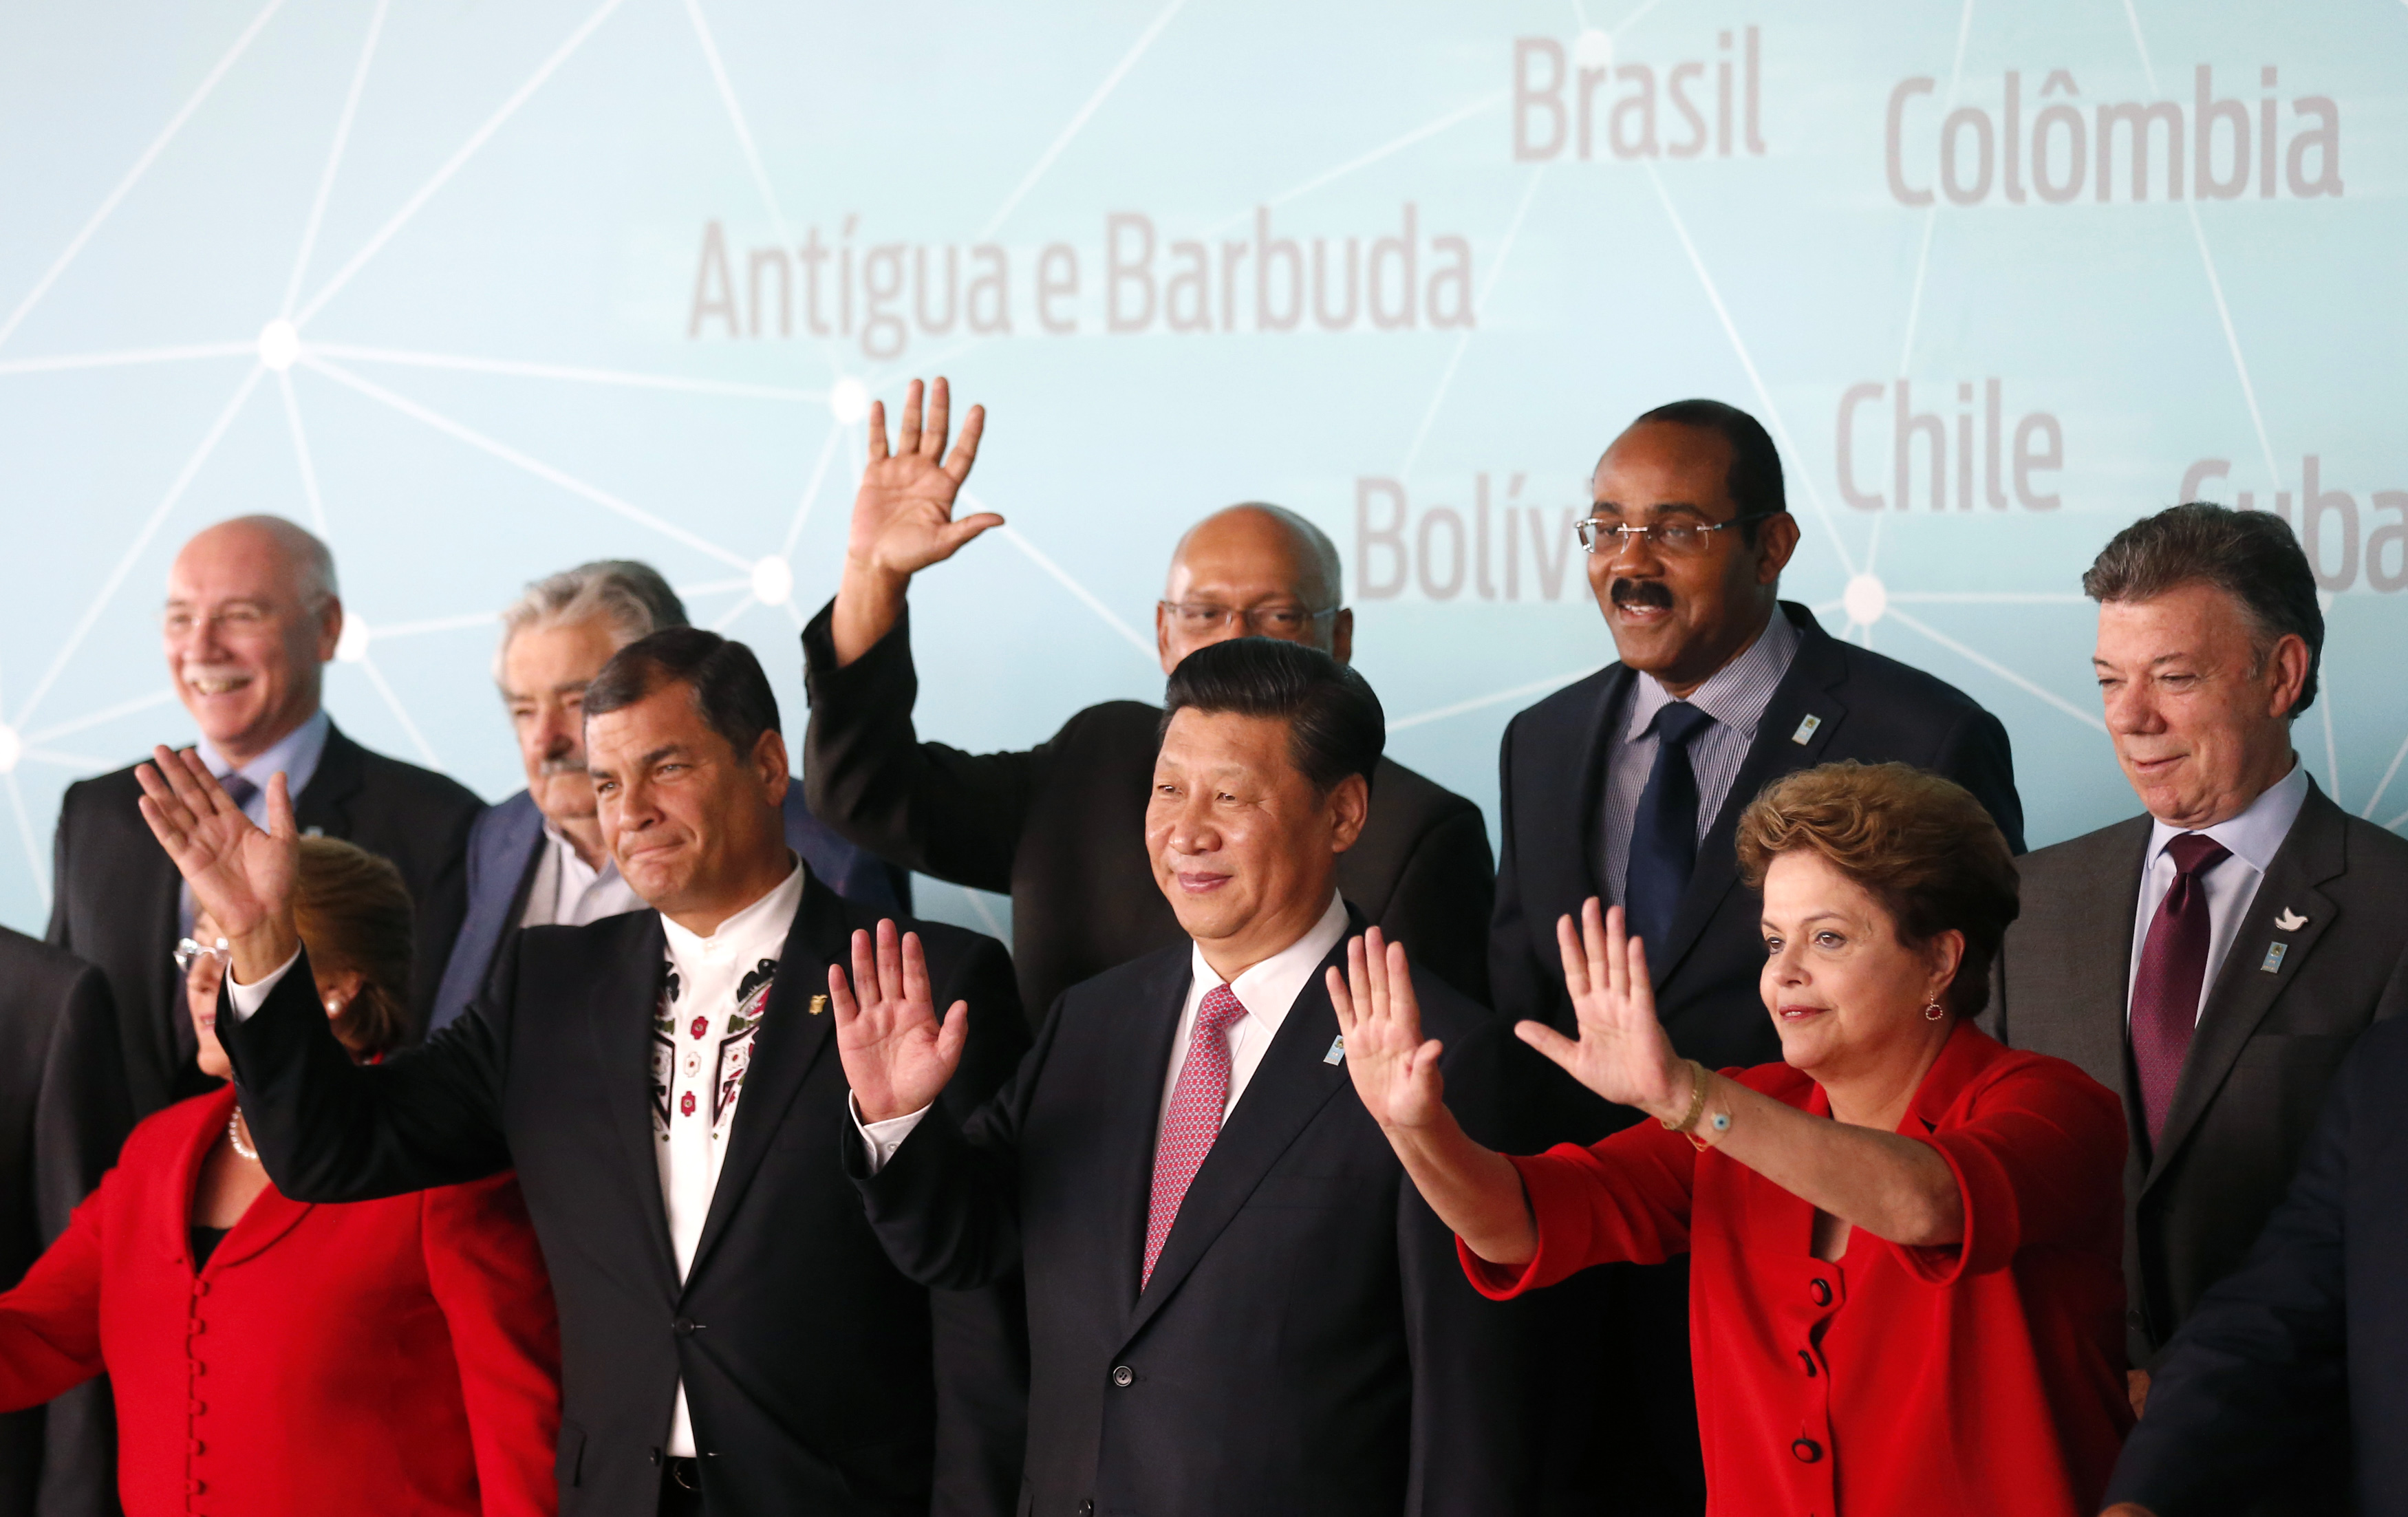 The geopolitics of China's rise in Latin America